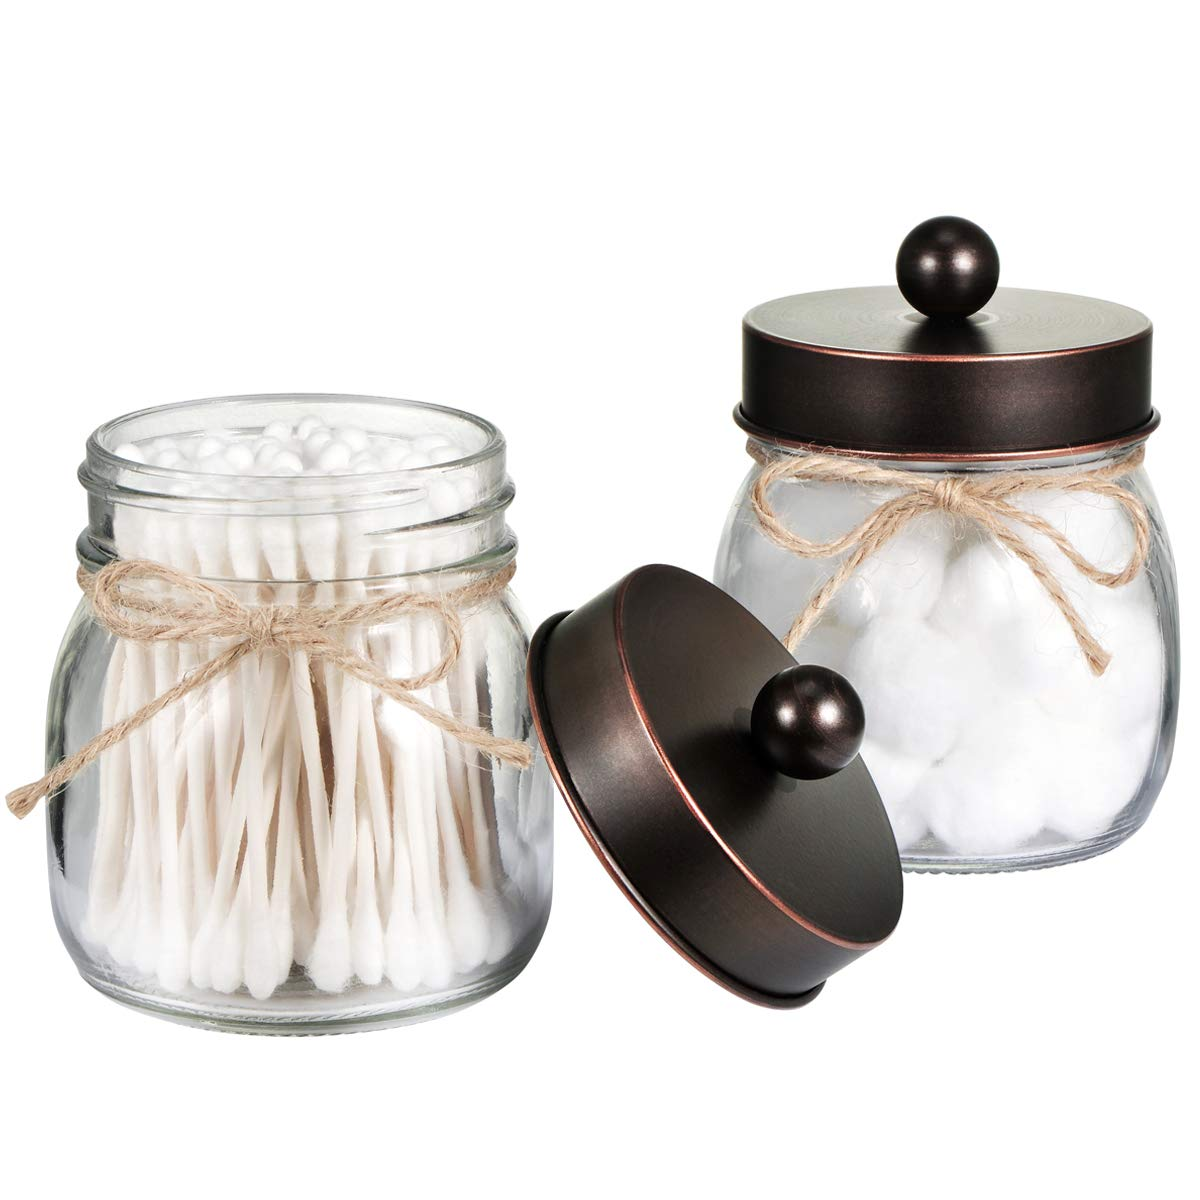 Mason Jar Bathroom Storage Organizer - Oil Rubbed Bronze - Rustic Farmhouse Decor Bathroom Accessories - Qtip Holder Dispenser Glass Apothecary Jars for Qtips,Cotton Swabs,Ball,Flossers (2 Pack)